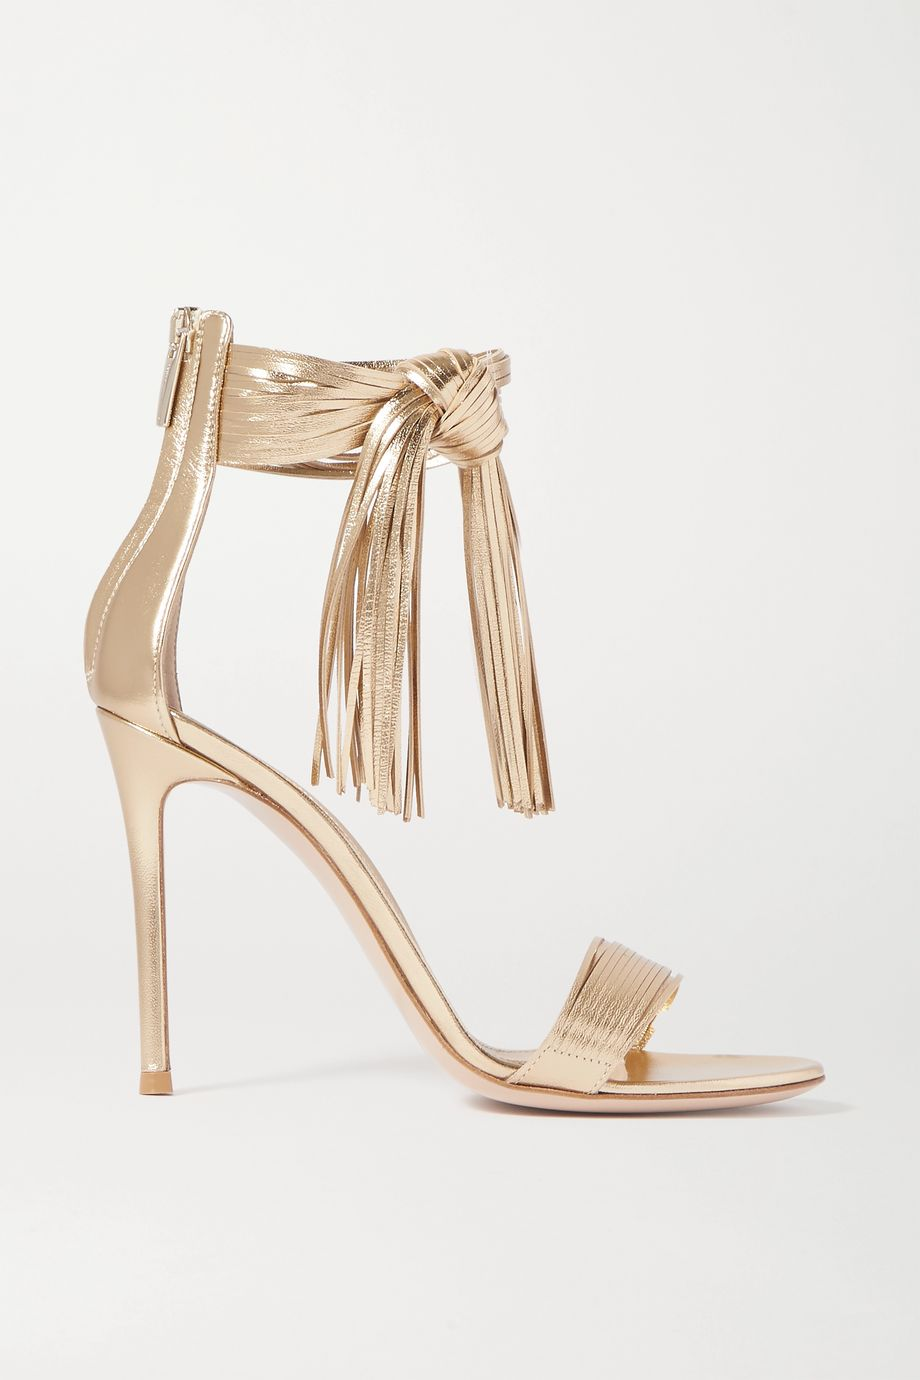 Gianvito Rossi 105 fringed metallic leather sandals